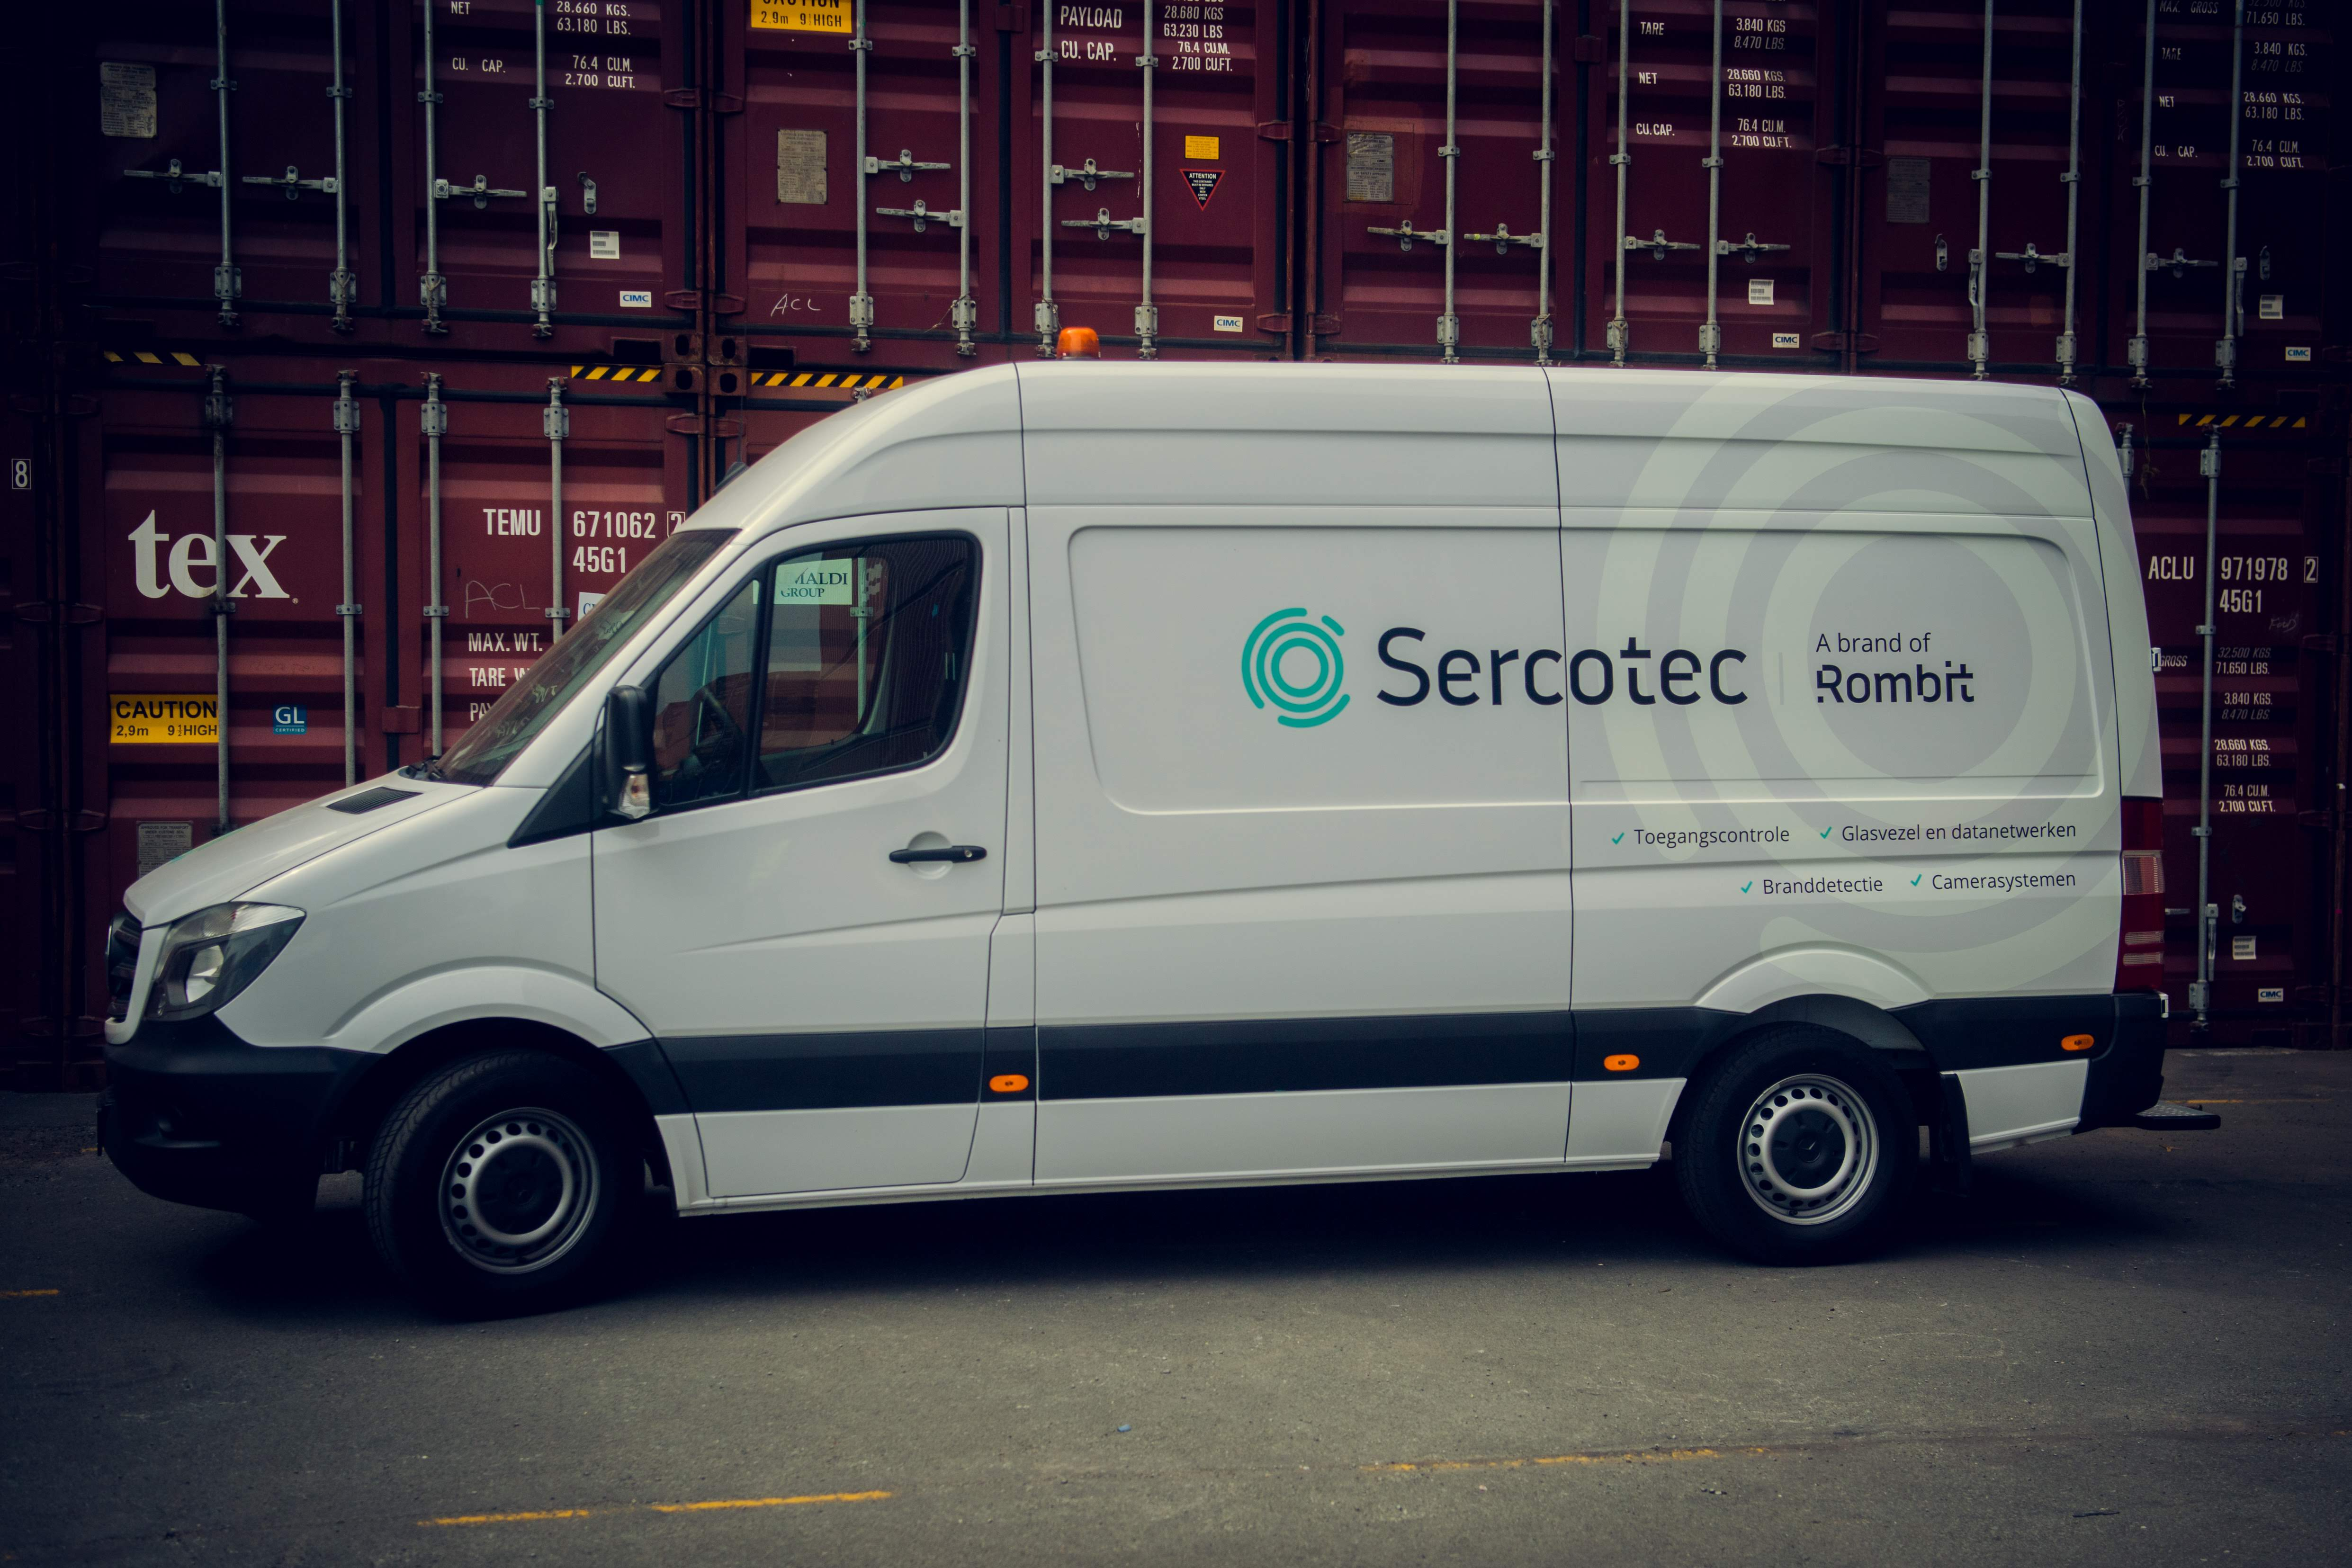 Tech company Rombit acquires security specialist Sercotec